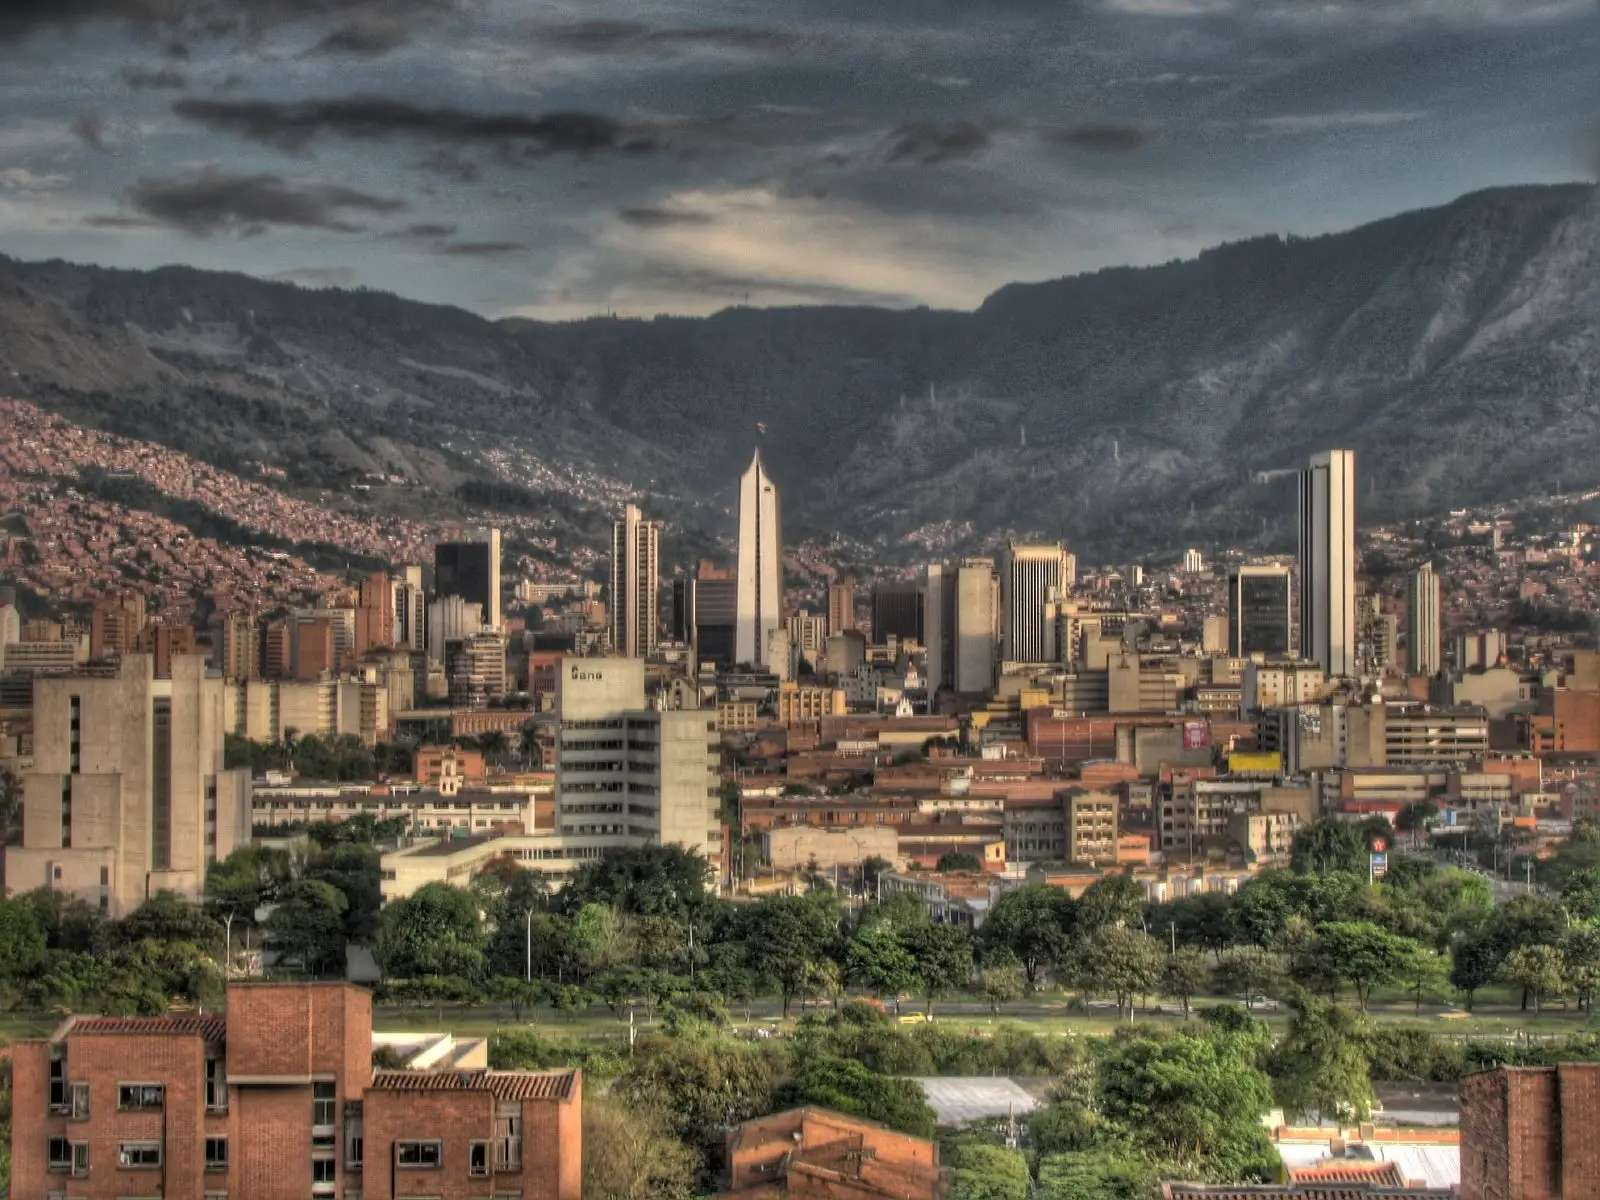 Medellin, Colombia, was once one of the world's most violent places, but the South American city is now a case study in urban revival. One example: Clever city planning, including the use of gondolas and escalators, has cut hours-long commute times to minutes.